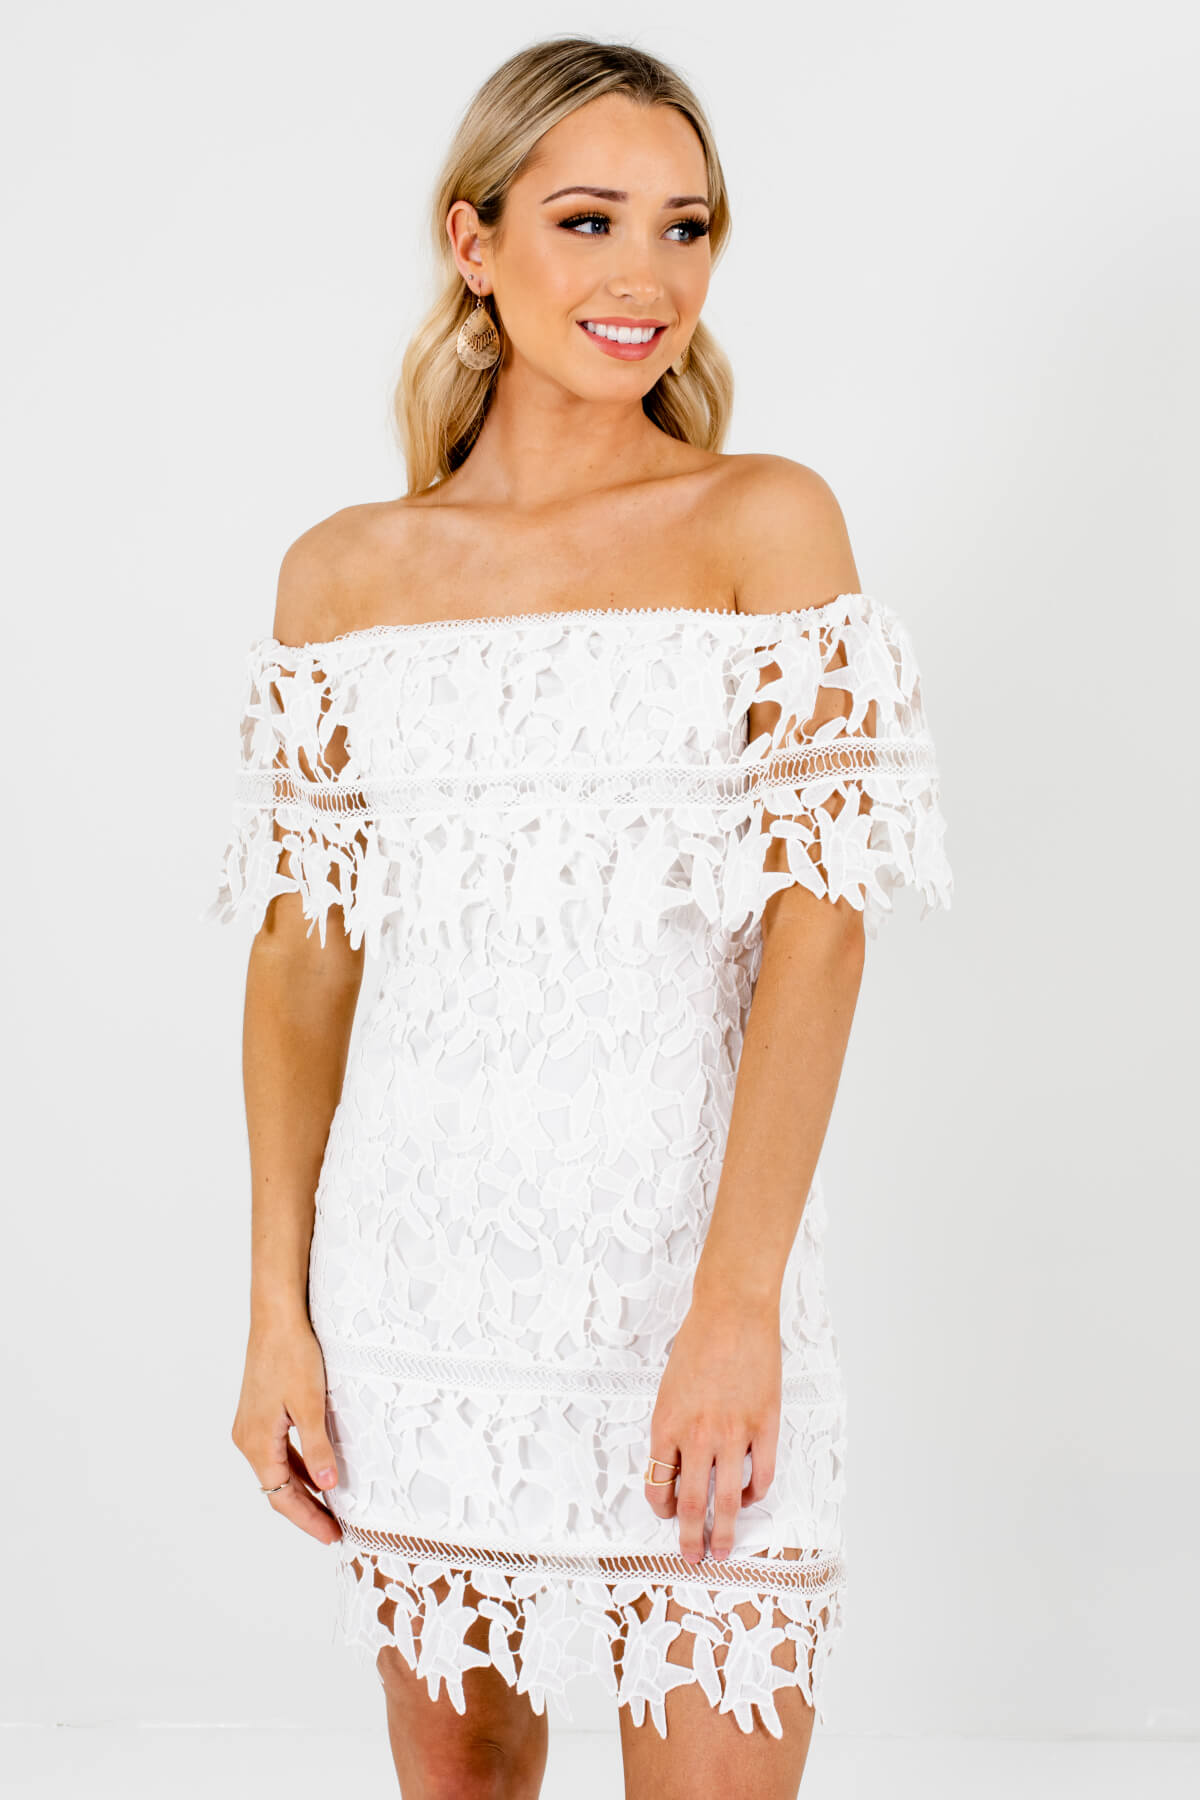 White Crochet Lace Overlay Boutique Mini Dresses for Women